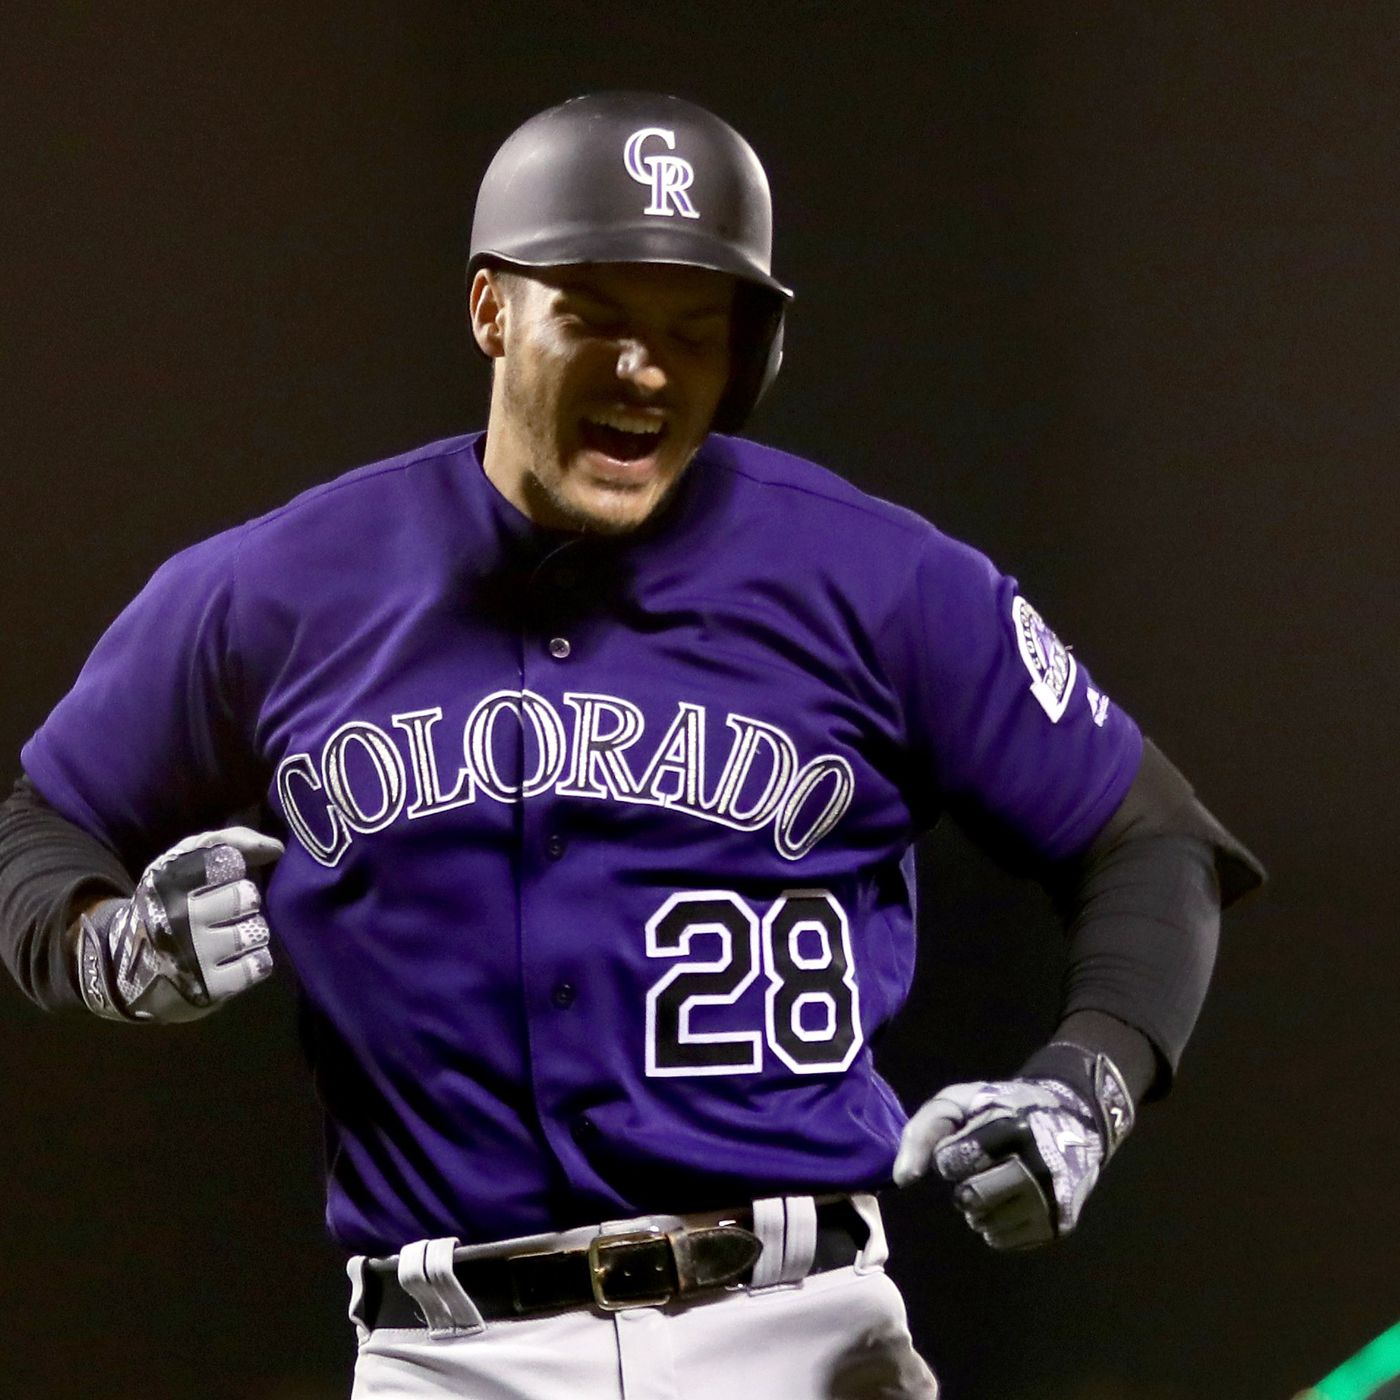 reputable site e01fa ee00b The Rockies should sign Nolan Arenado to a contract ...